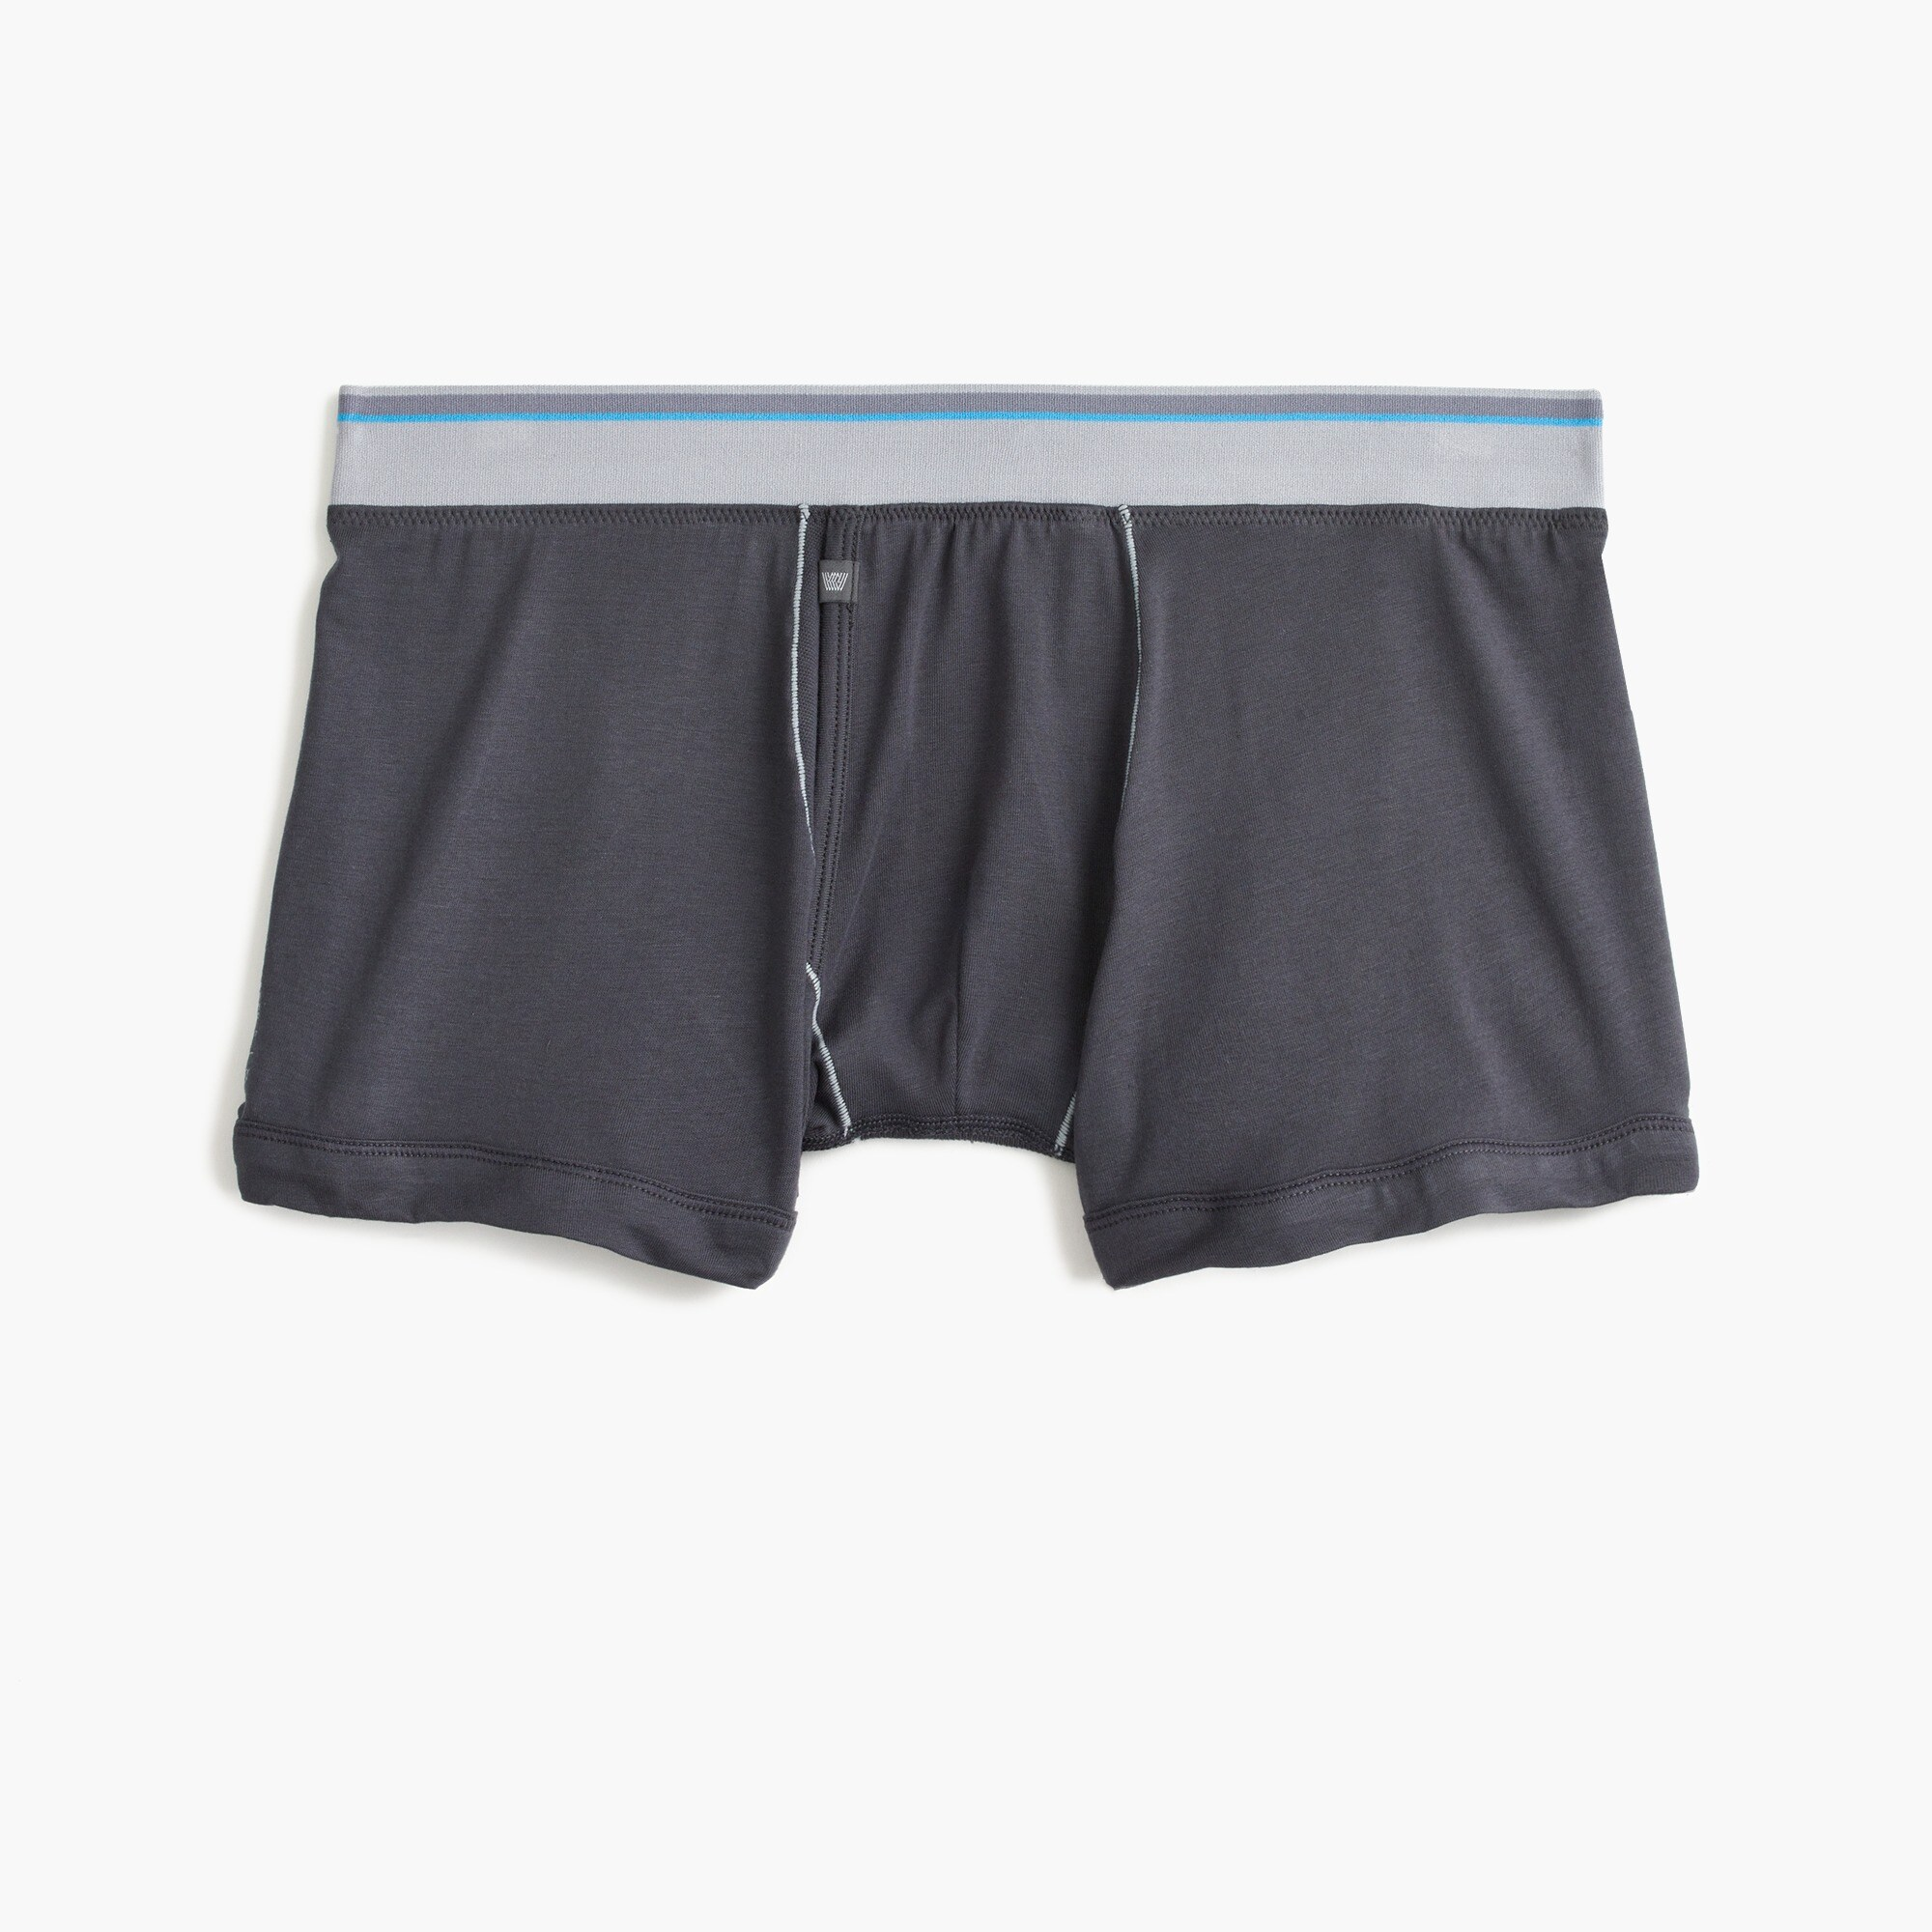 mens Mack Weldon® 18-hour trunks